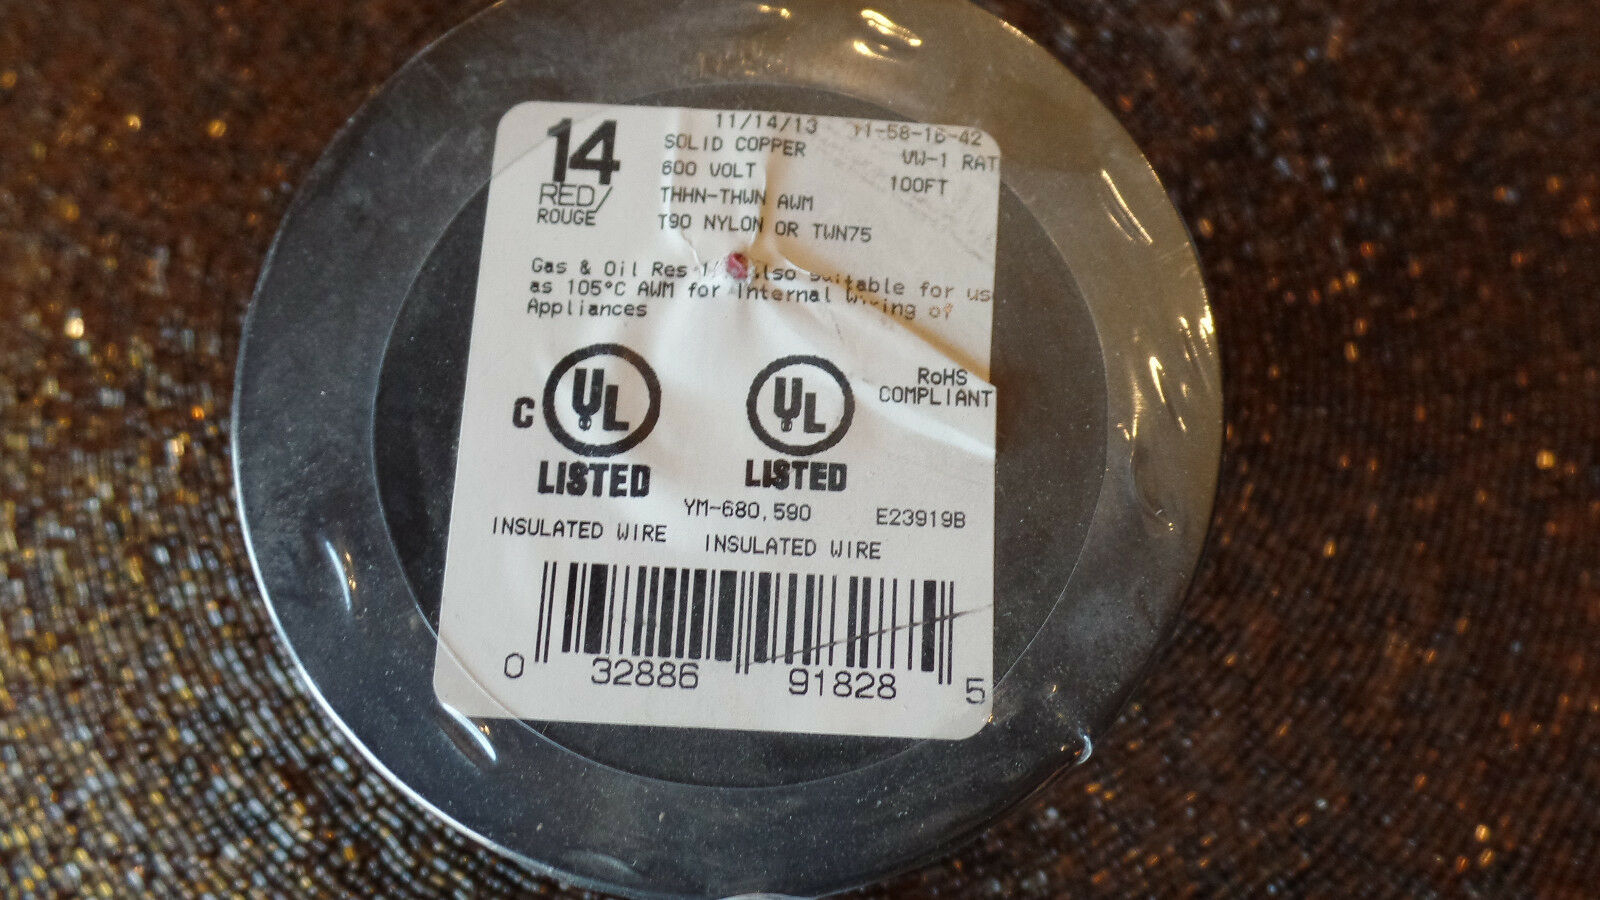 Southwire 14 AWG Red Solid Copper Insulated Wire THHN THWN AWM 100 ...